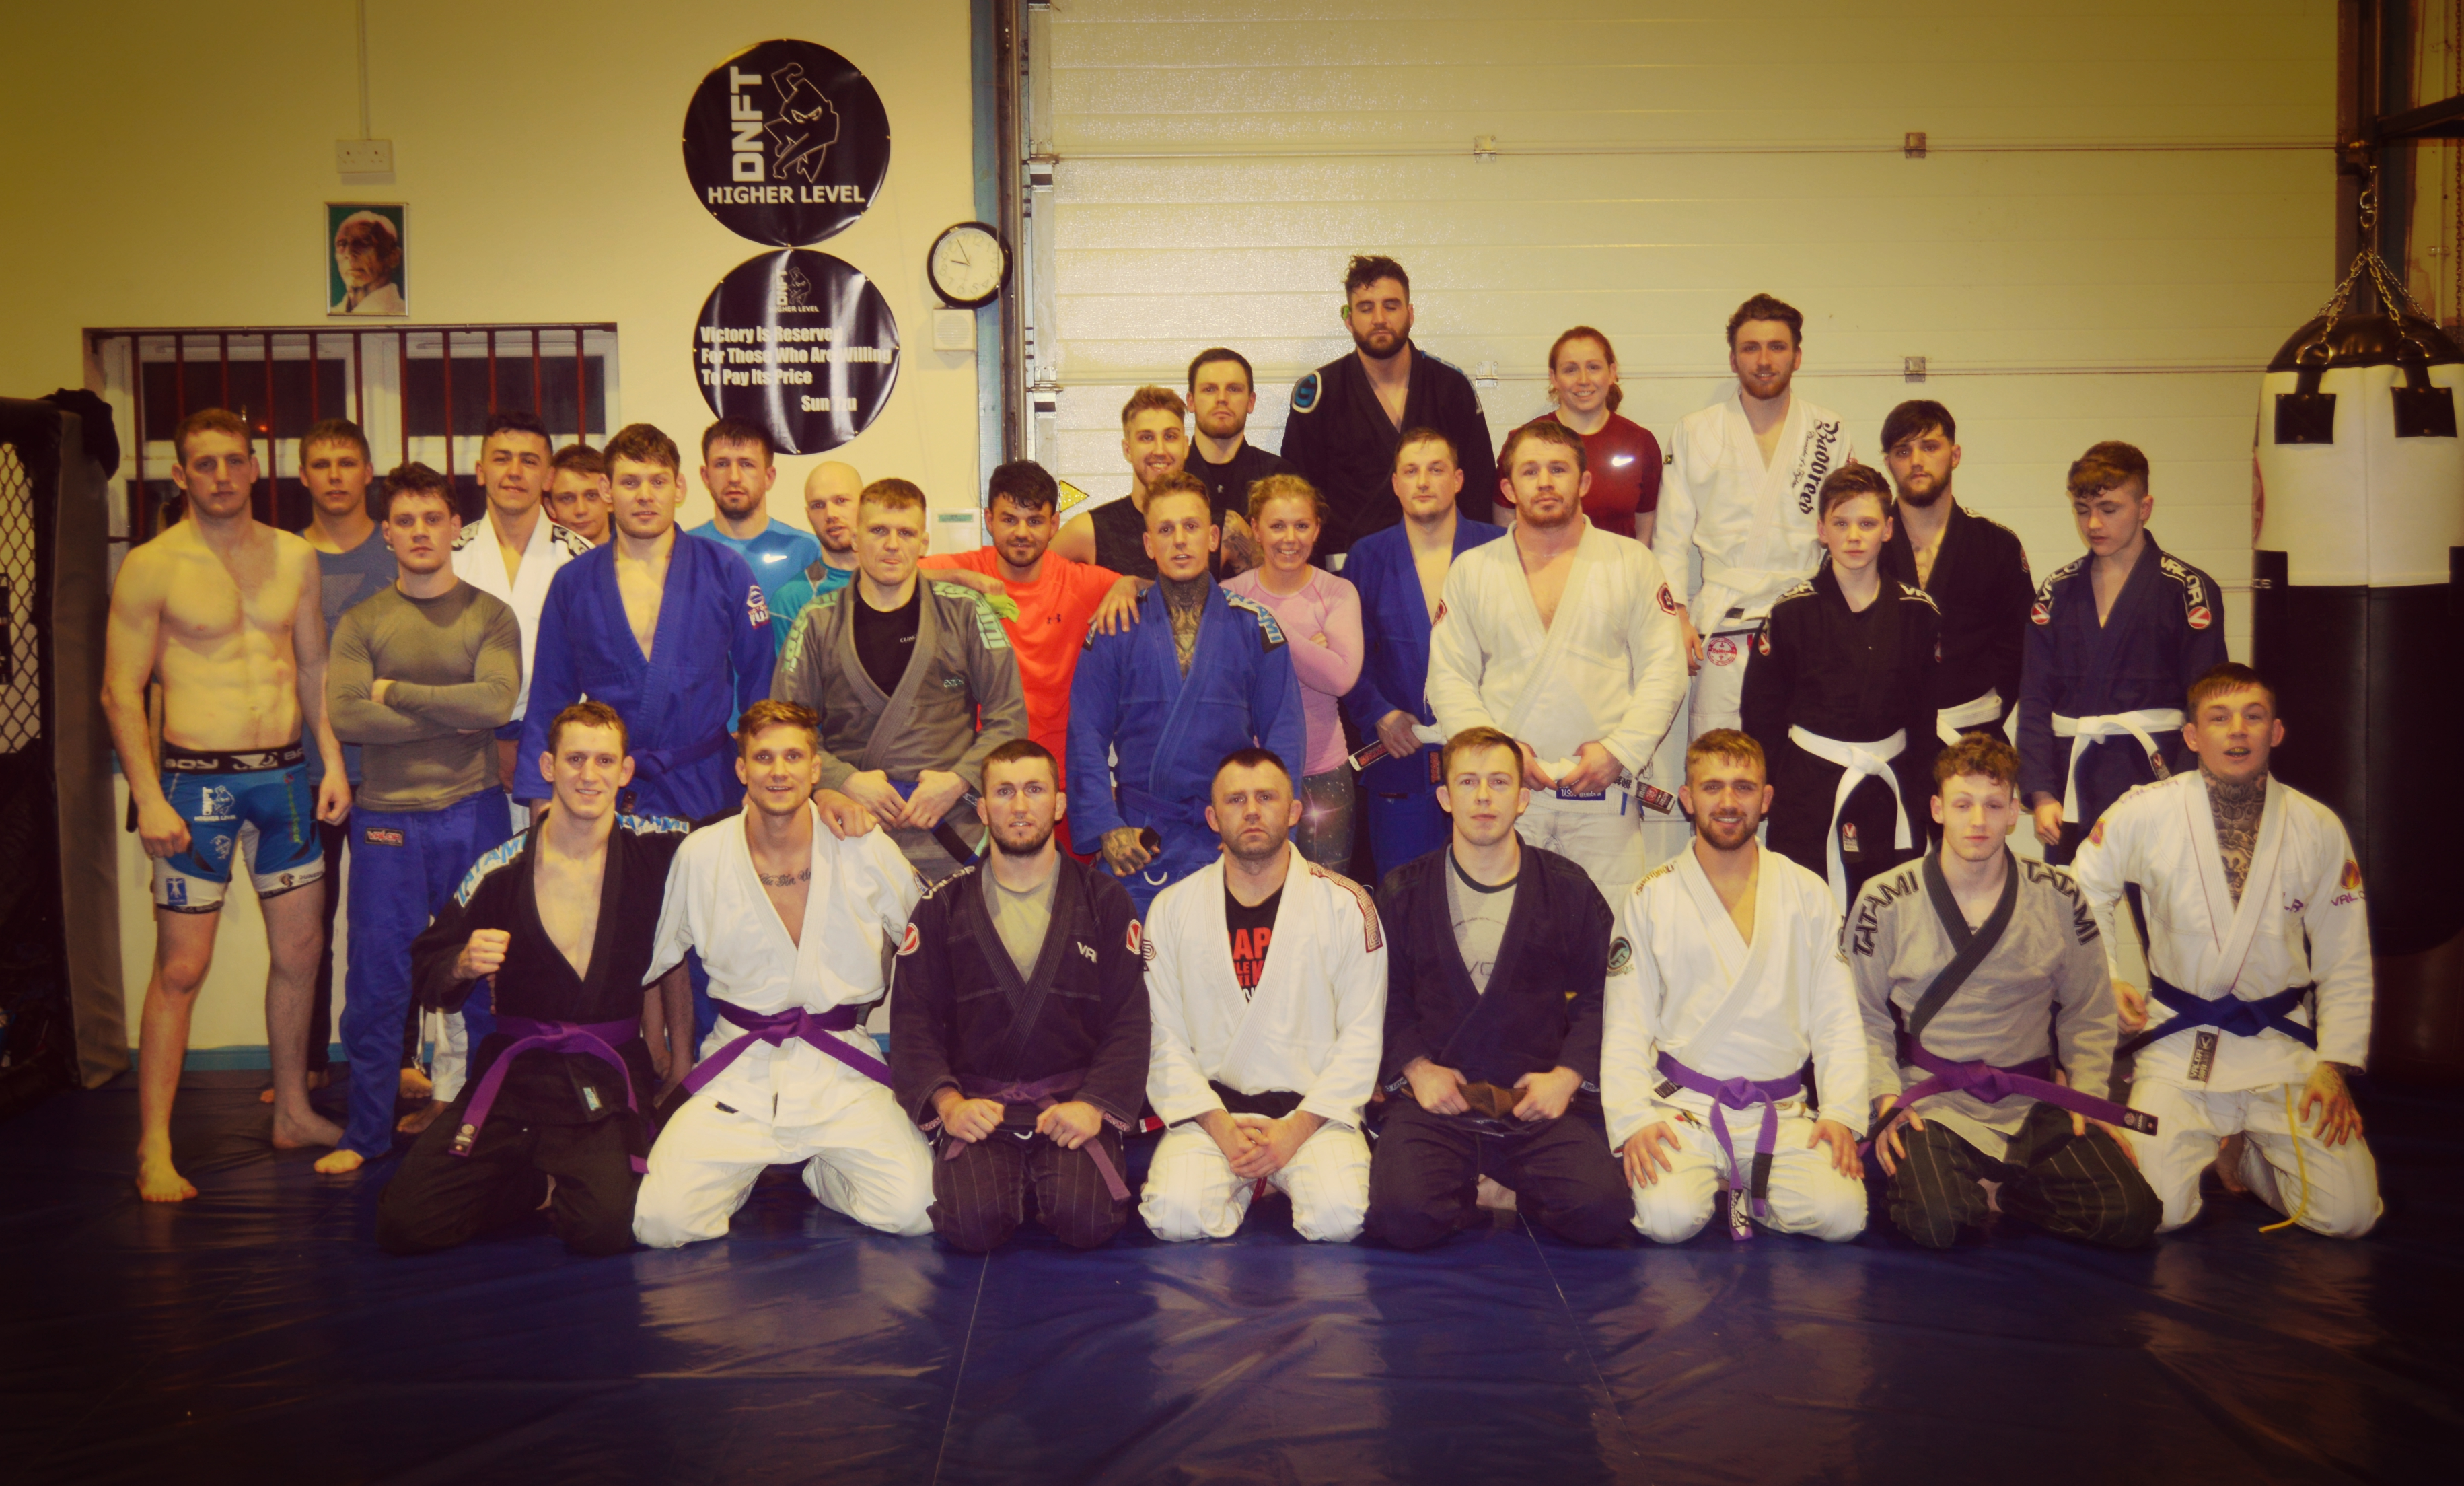 BJJ class at Higher Level